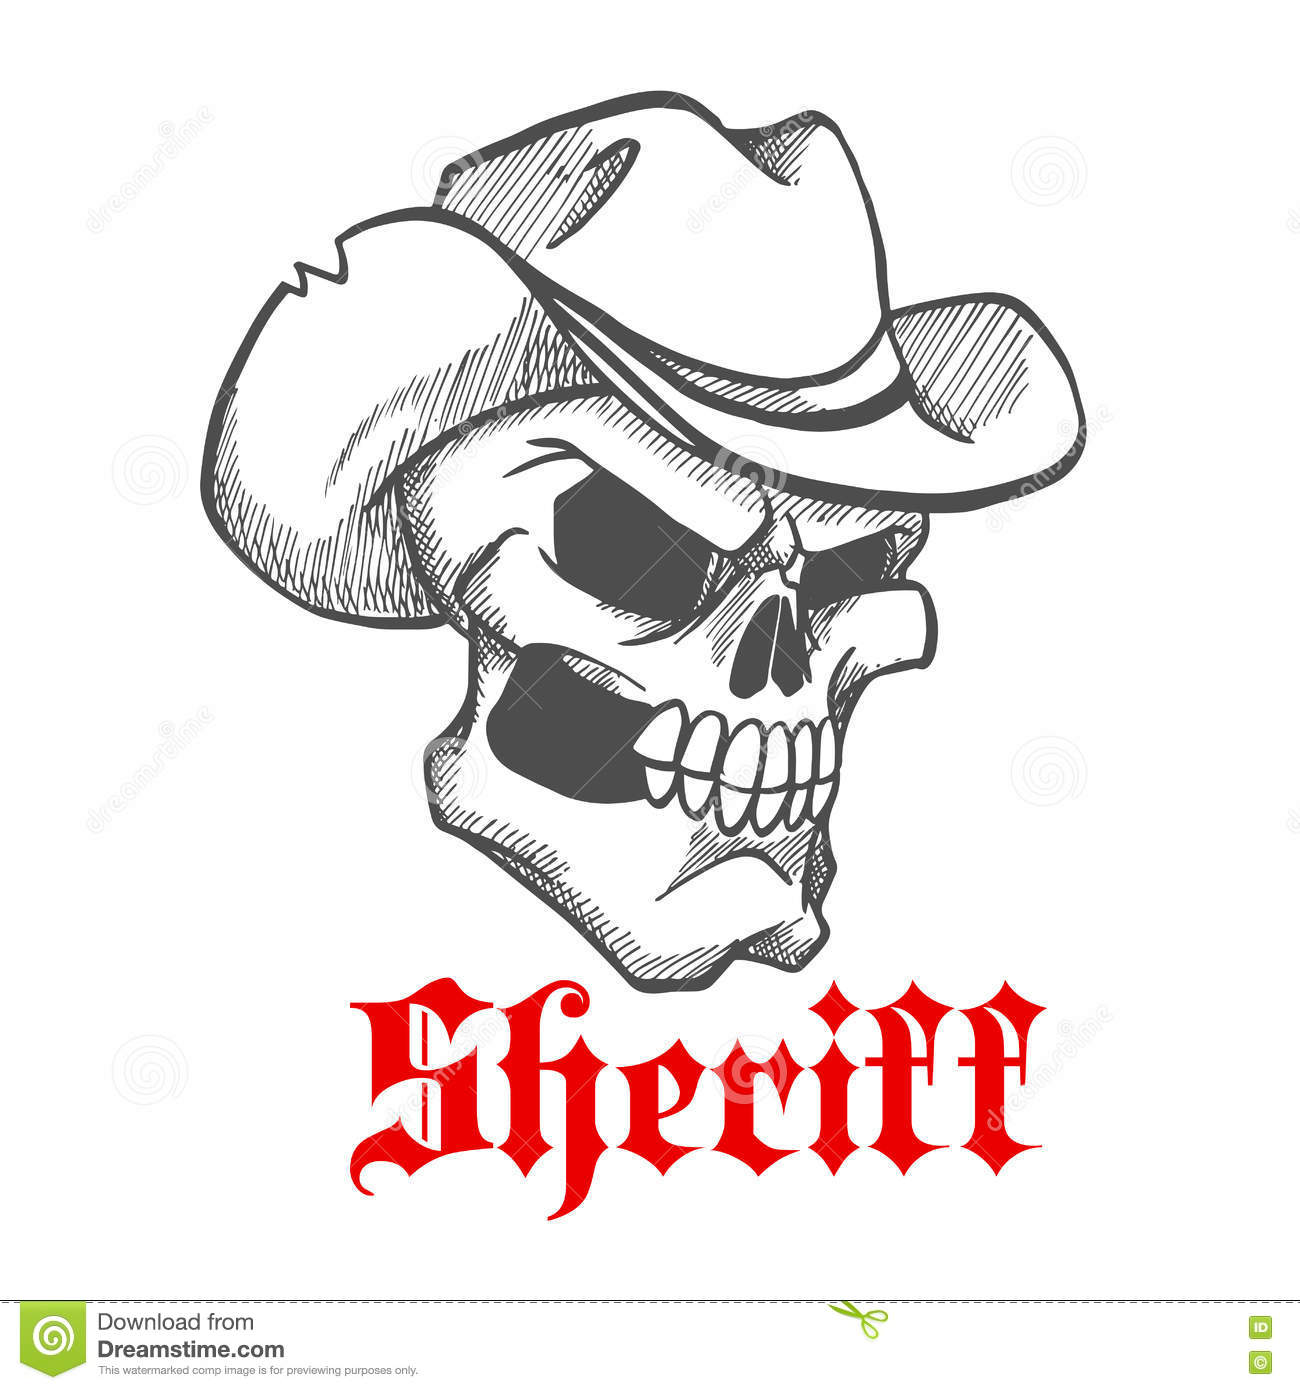 3652c7c30bd Dangerous and angry skull sheriff symbol wearing old leather cowboy hat  with ragged edges. Sketched human skeleton for wild west concept